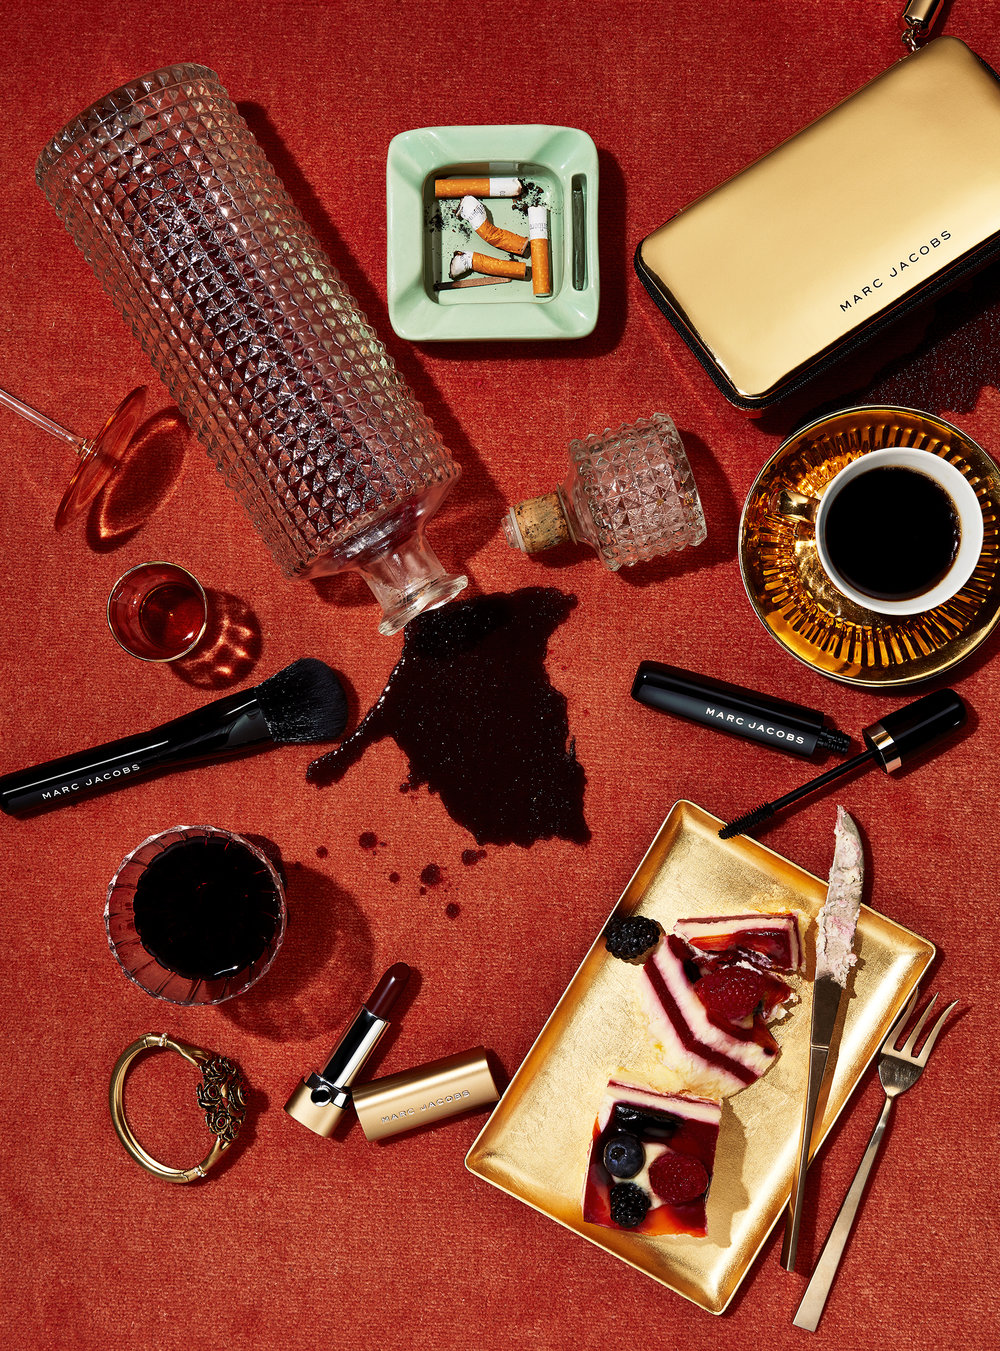 Marc Jacobs Cosmetics Table Scape